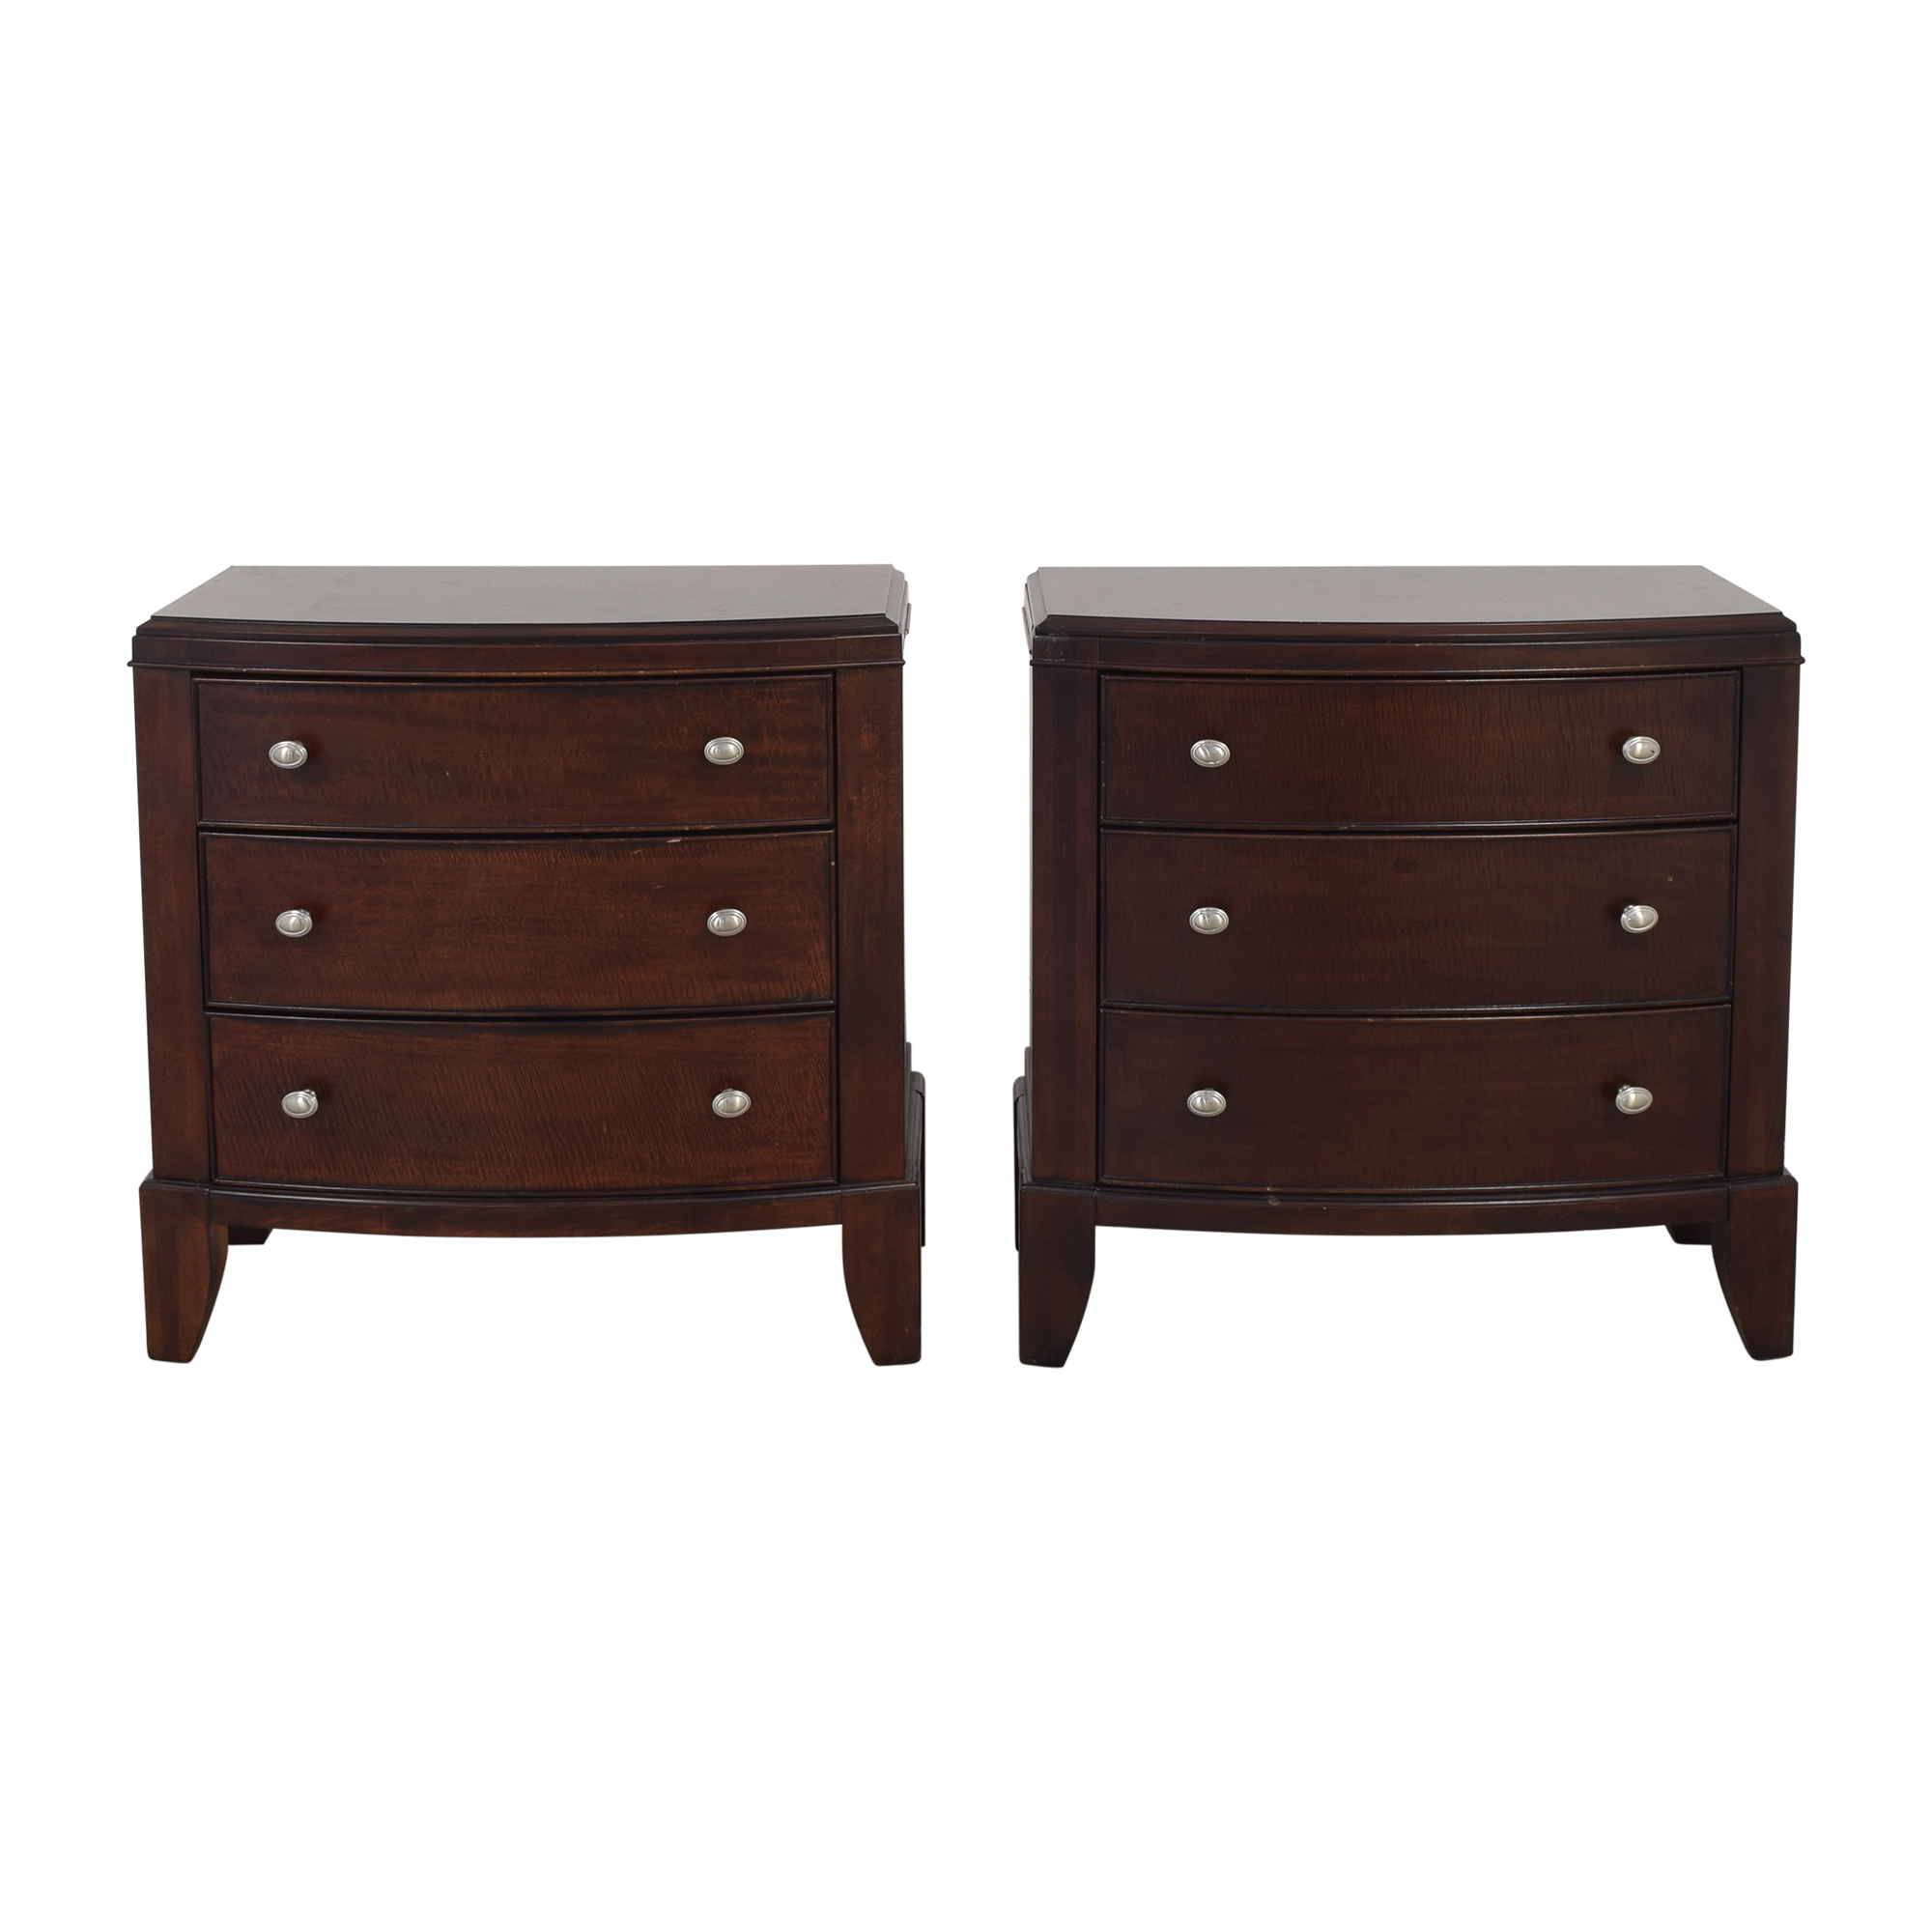 Macy's Macy's Three Drawer Nightstands ct